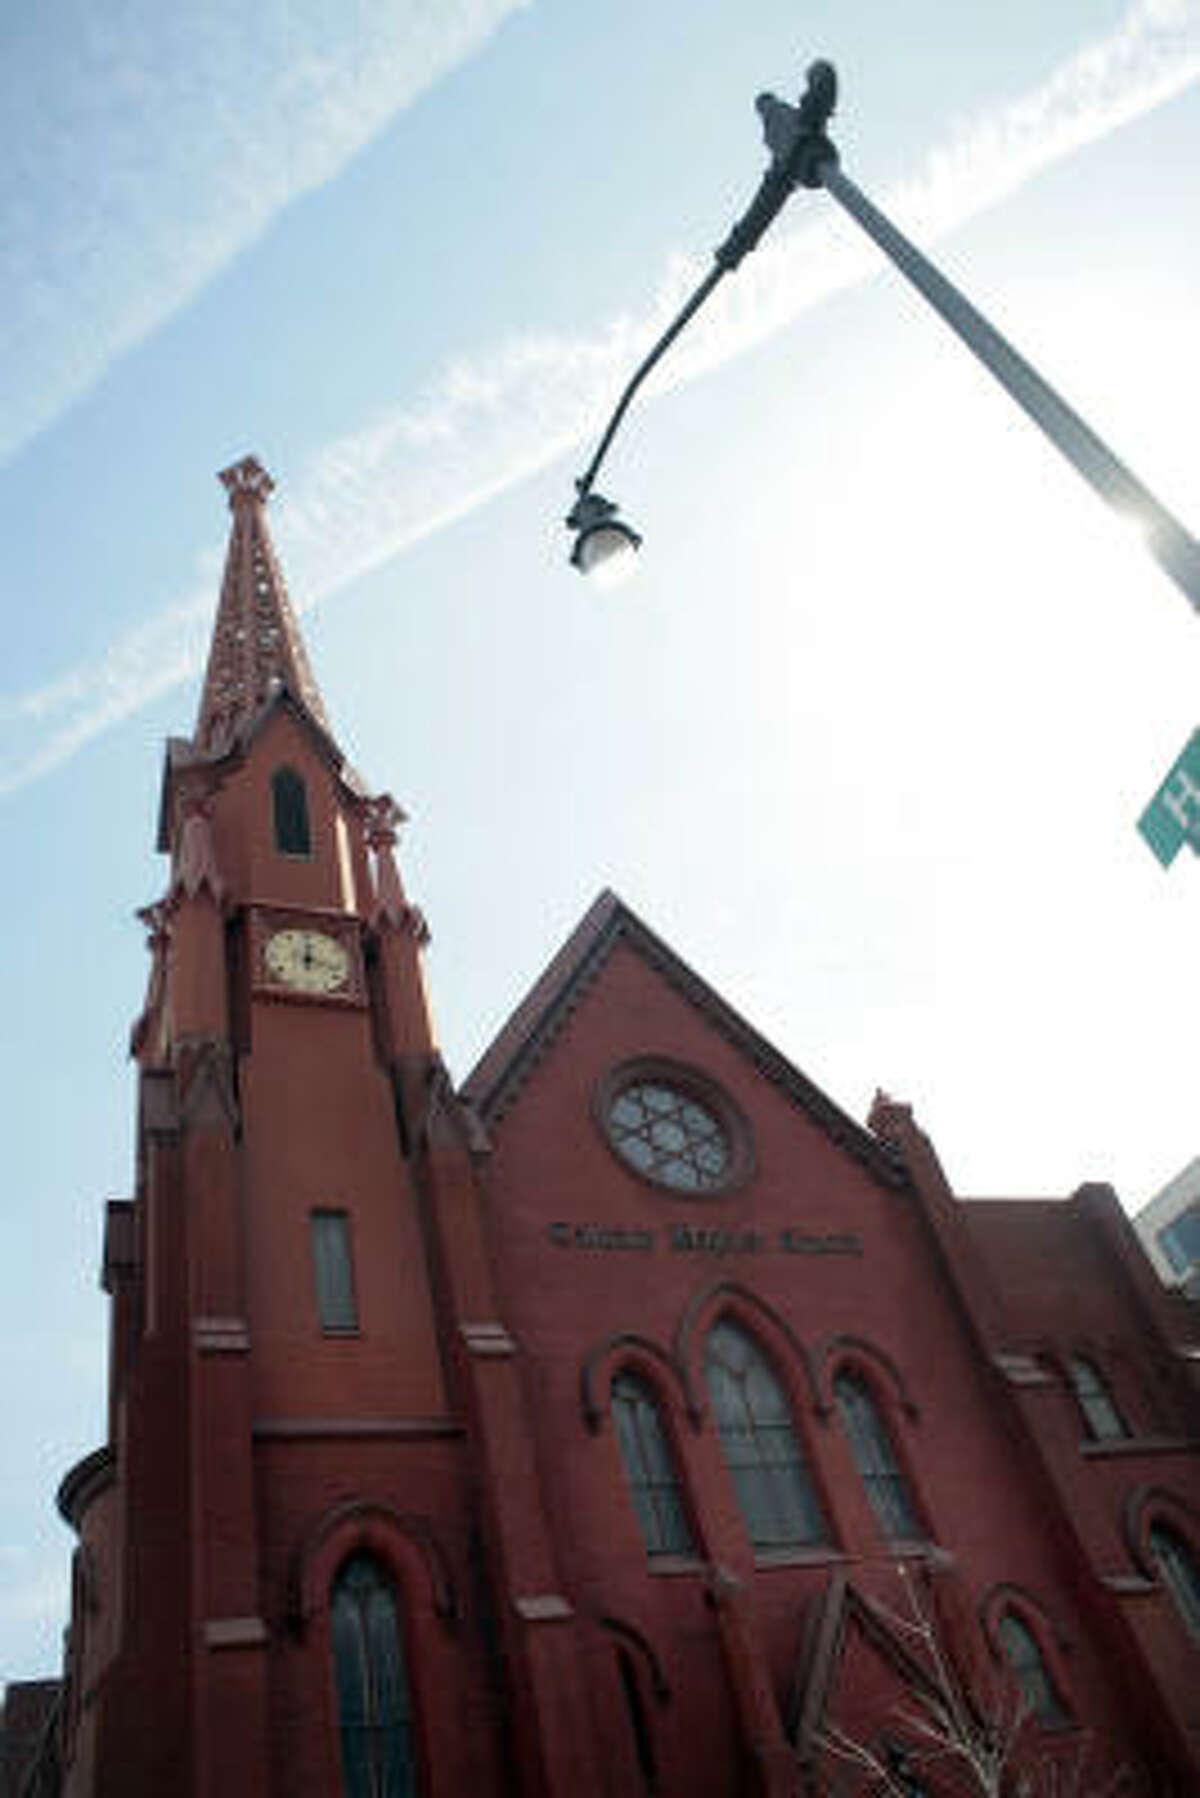 President Barack Obama and his family are considering joining several churches of various denominations in the nation's capital but have yet to settle on one. Calvary Baptist, a smaller church led by a pastor who grew up in Obama's birthplace, Hawaii, is said to be under consideration.